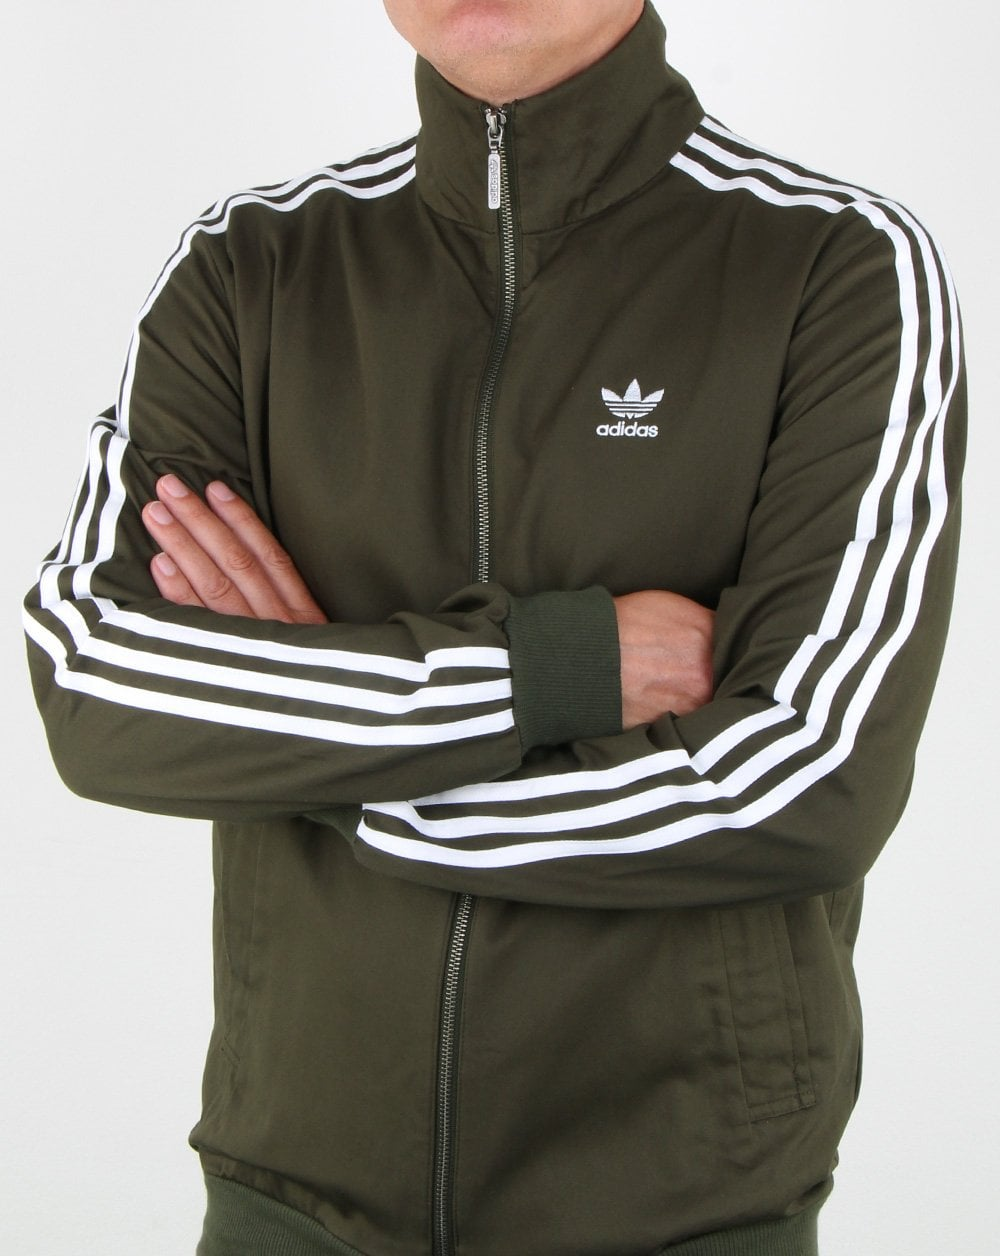 Adidas Originals Franz Beckenbauer Track Top Night Cargo e923247ae2